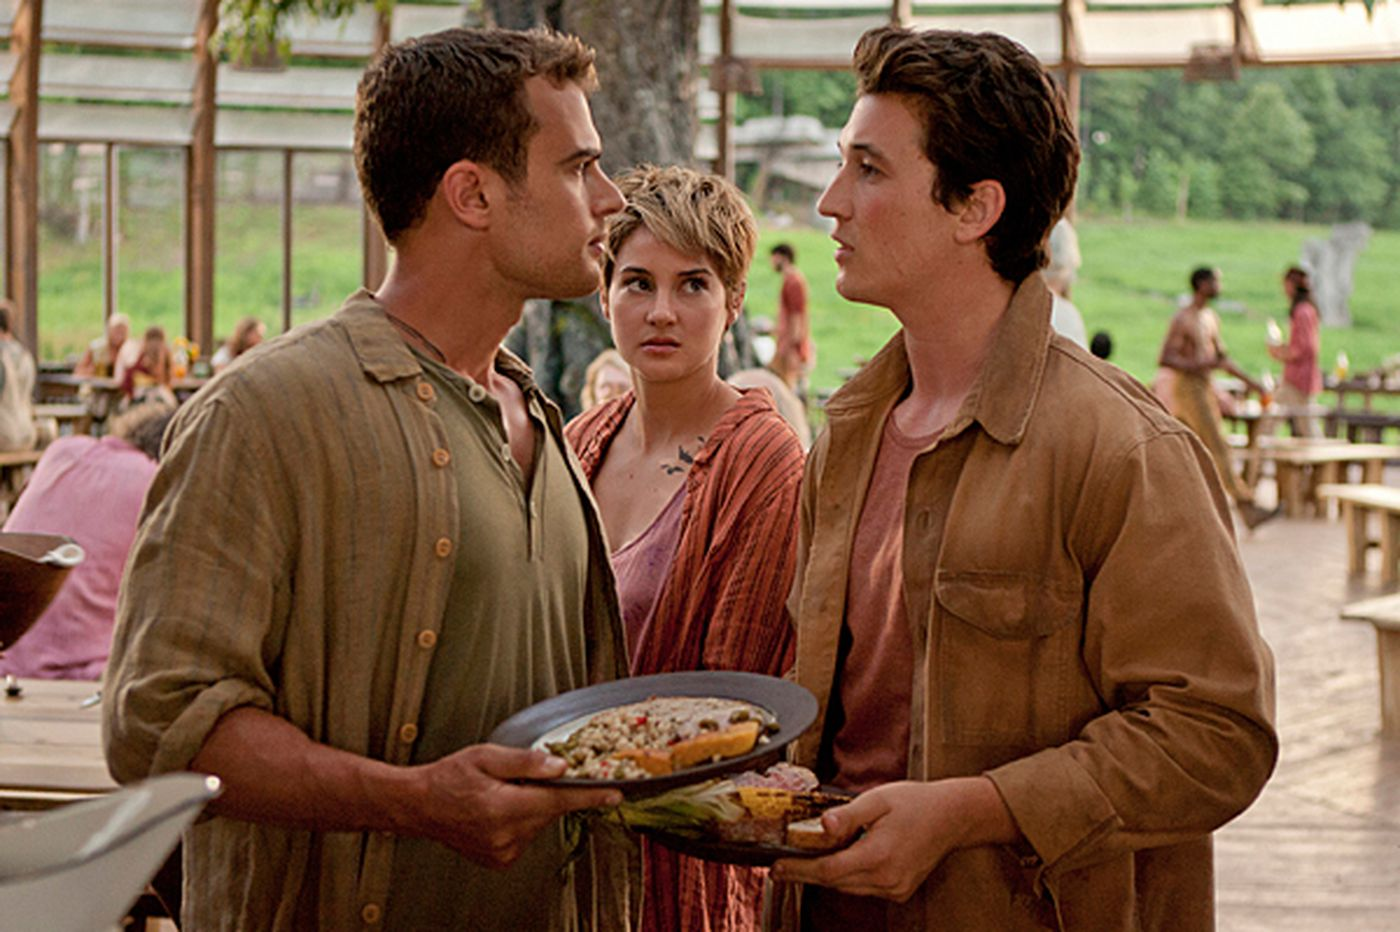 'The Divergent Series: Insurgent': More action, cuter haircuts